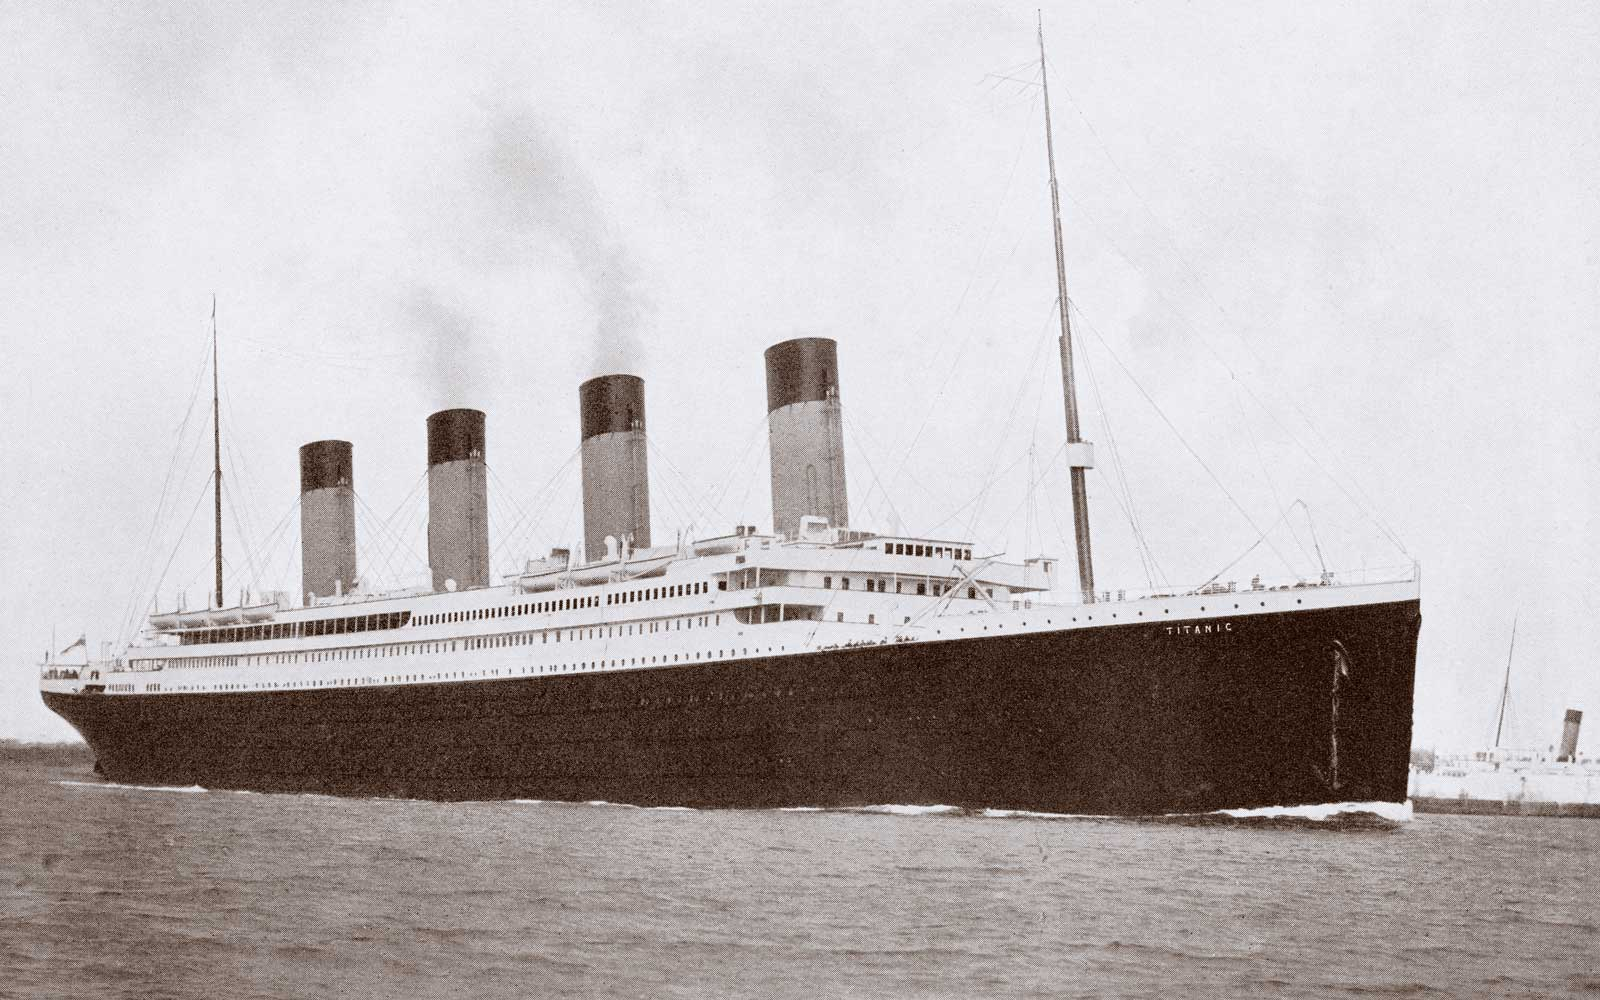 The 46,328 tons RMS Titanic of the White Star Line which sank at 2:20 AM Monday morning April 15 1912 after hitting iceberg in North Atlantic